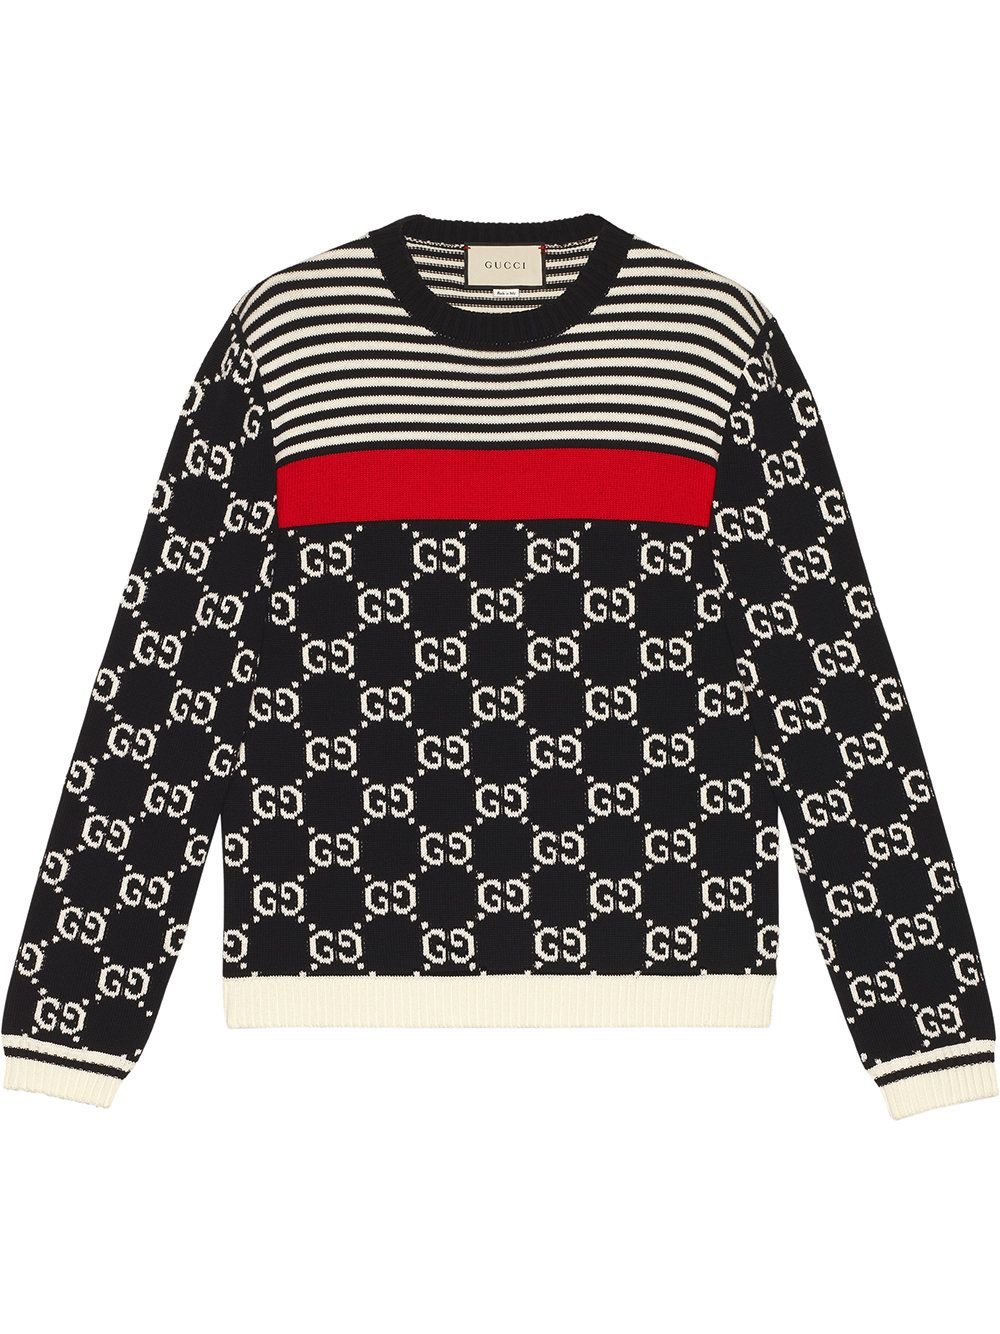 6f35b6ed40a GUCCI Gg-Intarsia And Stripe Crew-Neck Sweater